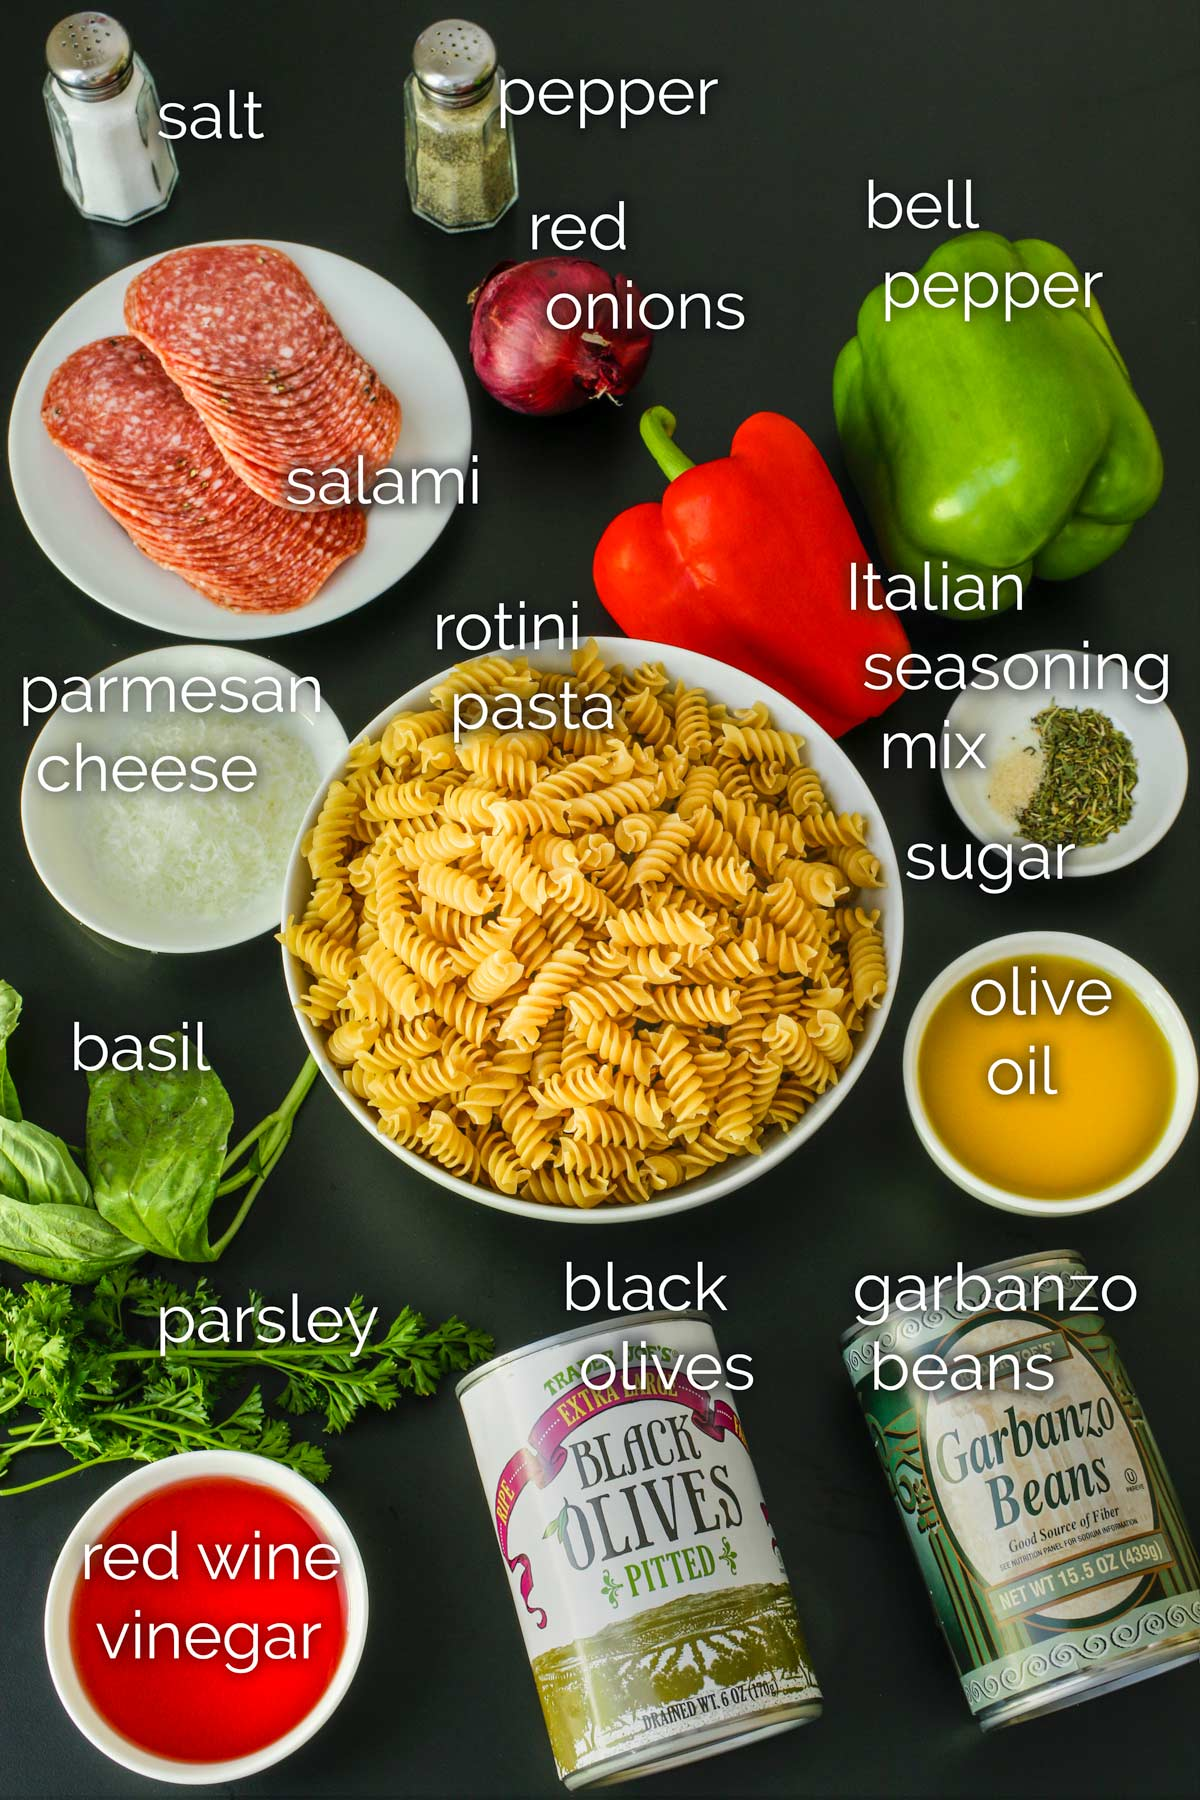 ingredients for antipasto pasta salad laid out on a black table.